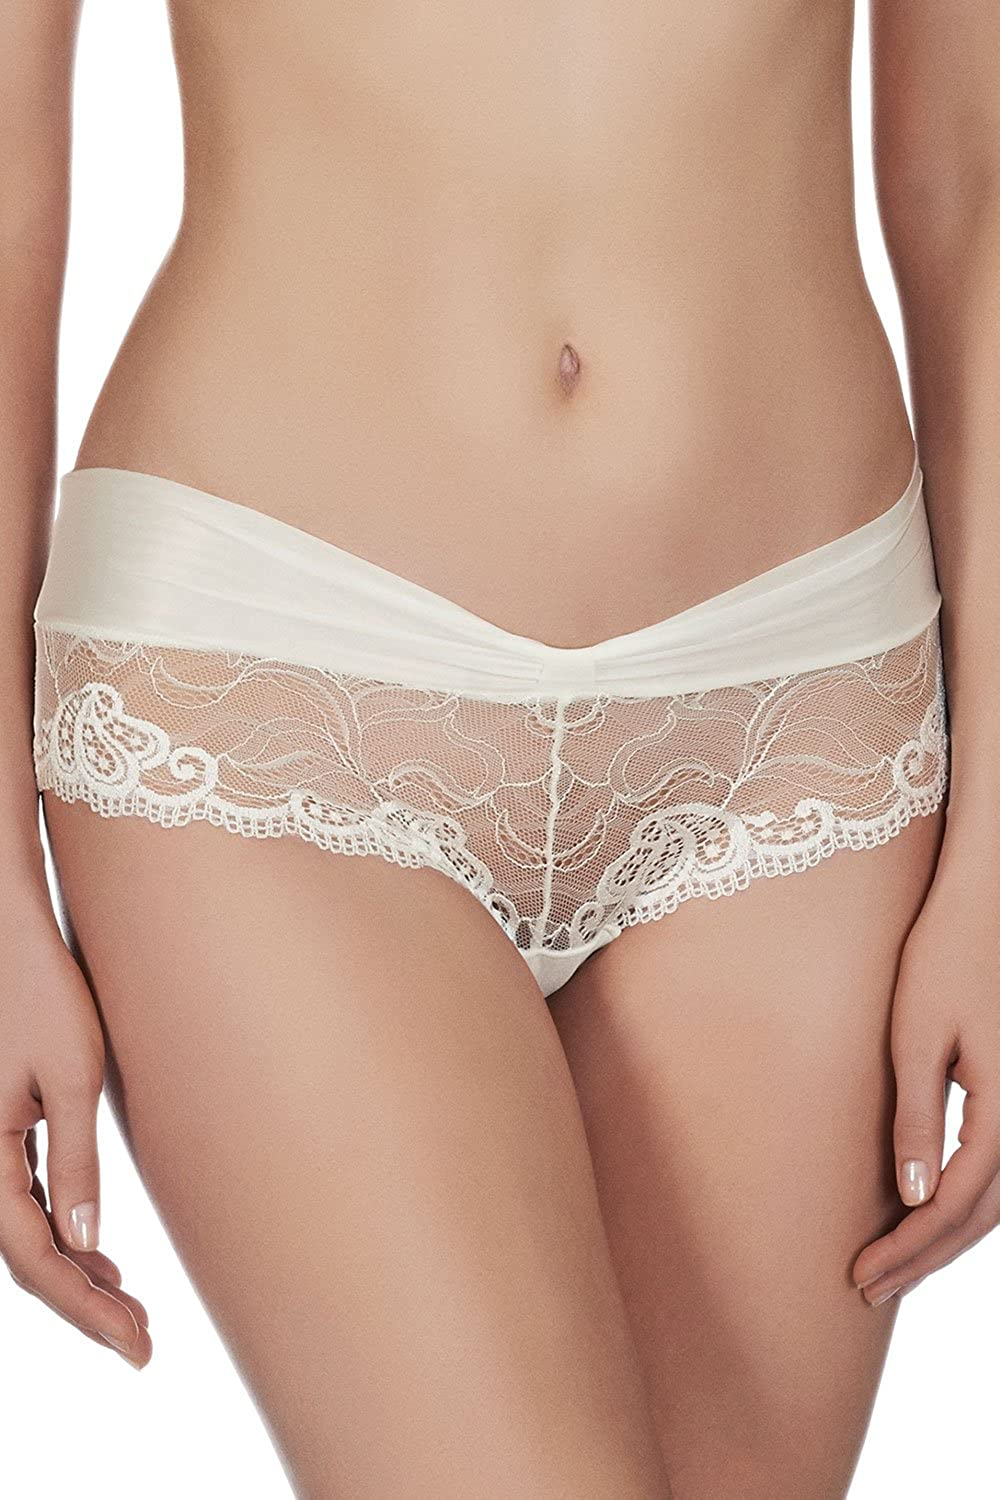 Simone Perele Joy, Shorty